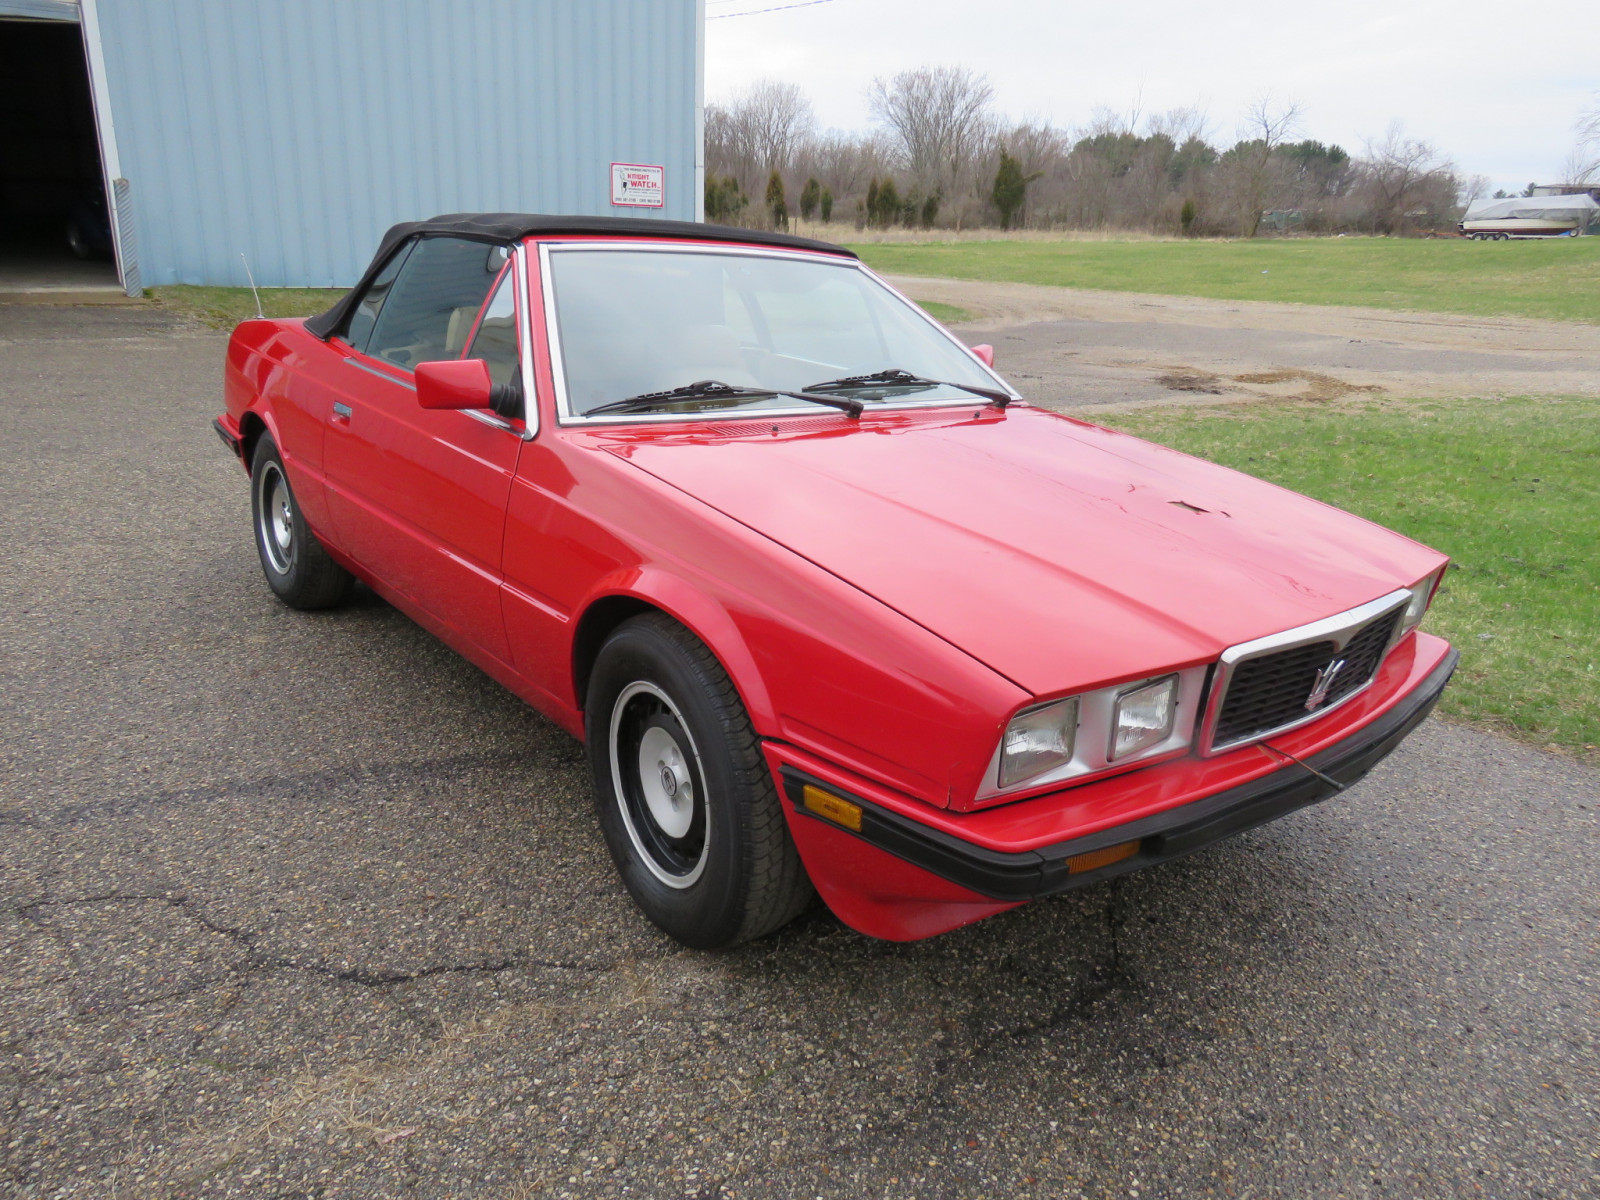 1986 MaserattiB1 Turbo Convertible - Image 3